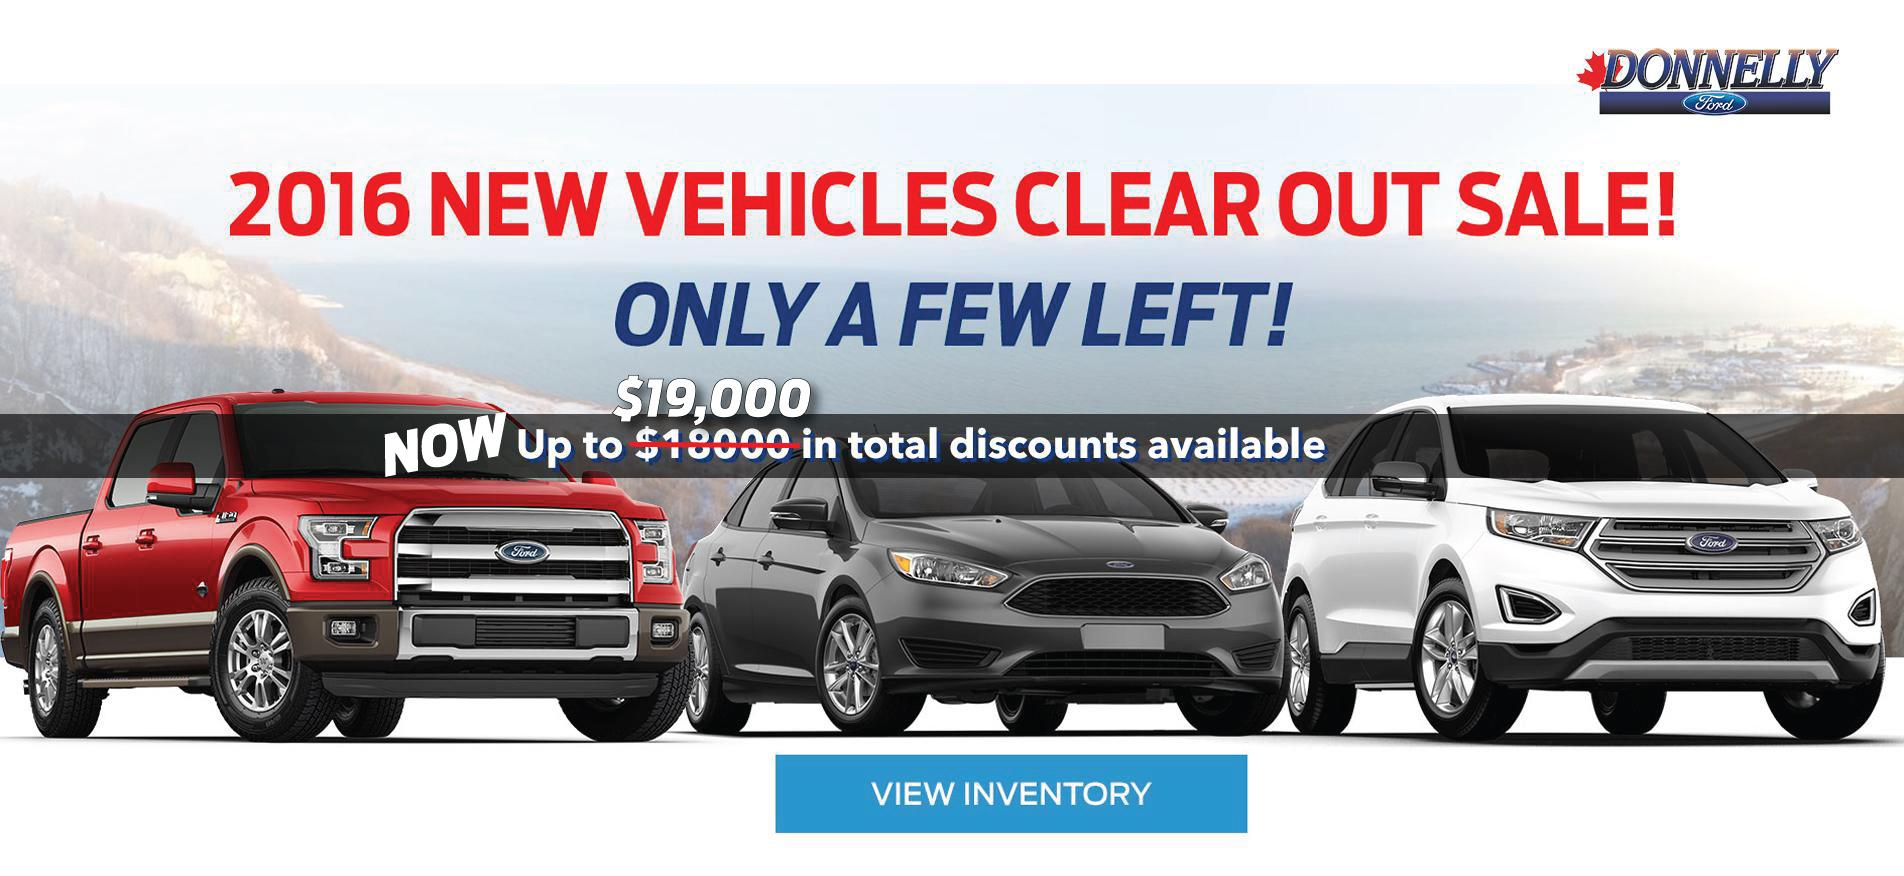 2016 Vehicle Clearout Sale